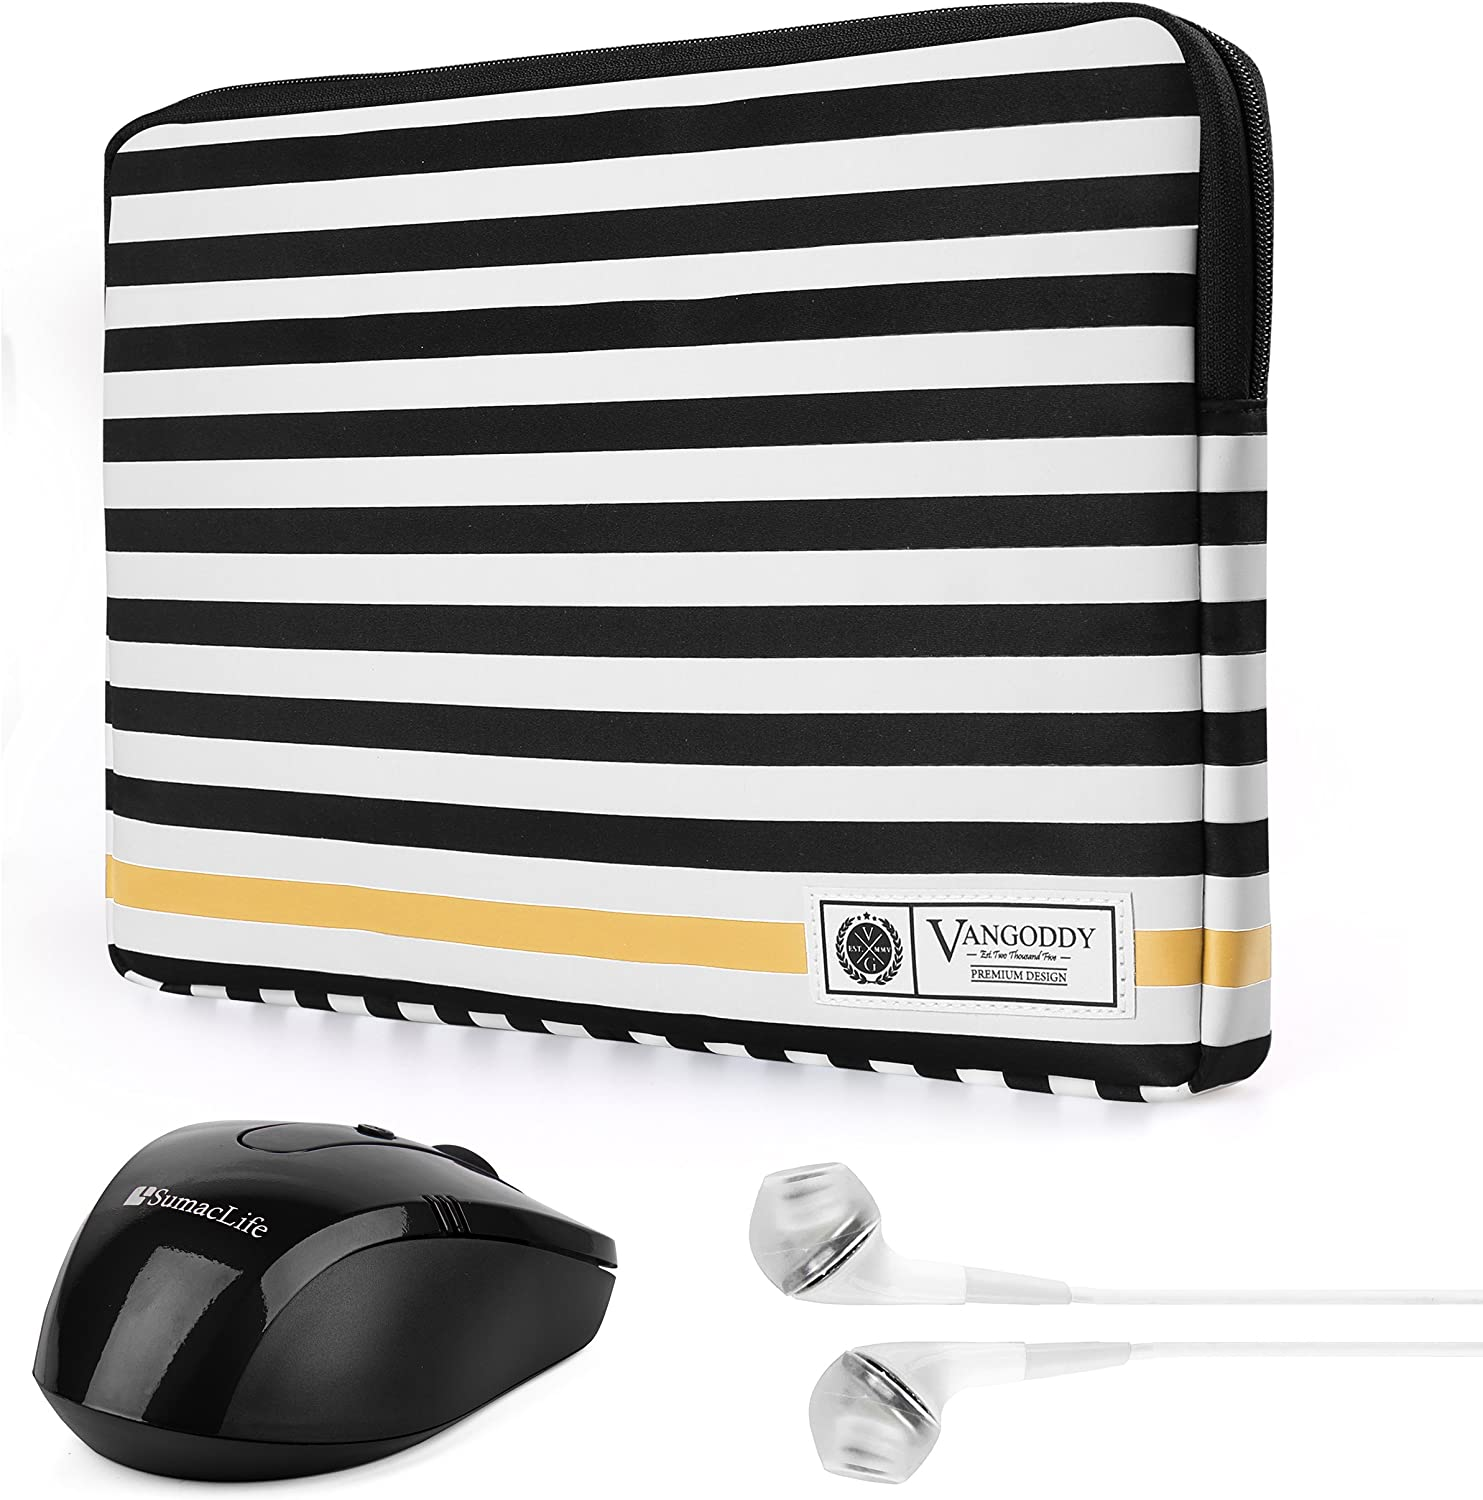 TabPro S 12 inch Tablet Luxe B Series Black White Stripe Compact Zipper Padded Carrying Sleeve for Samsung Galaxy Tab A 10.1 inch Chromebok Series 11.6 inch Laptop with Wireless Mouse and Headphone